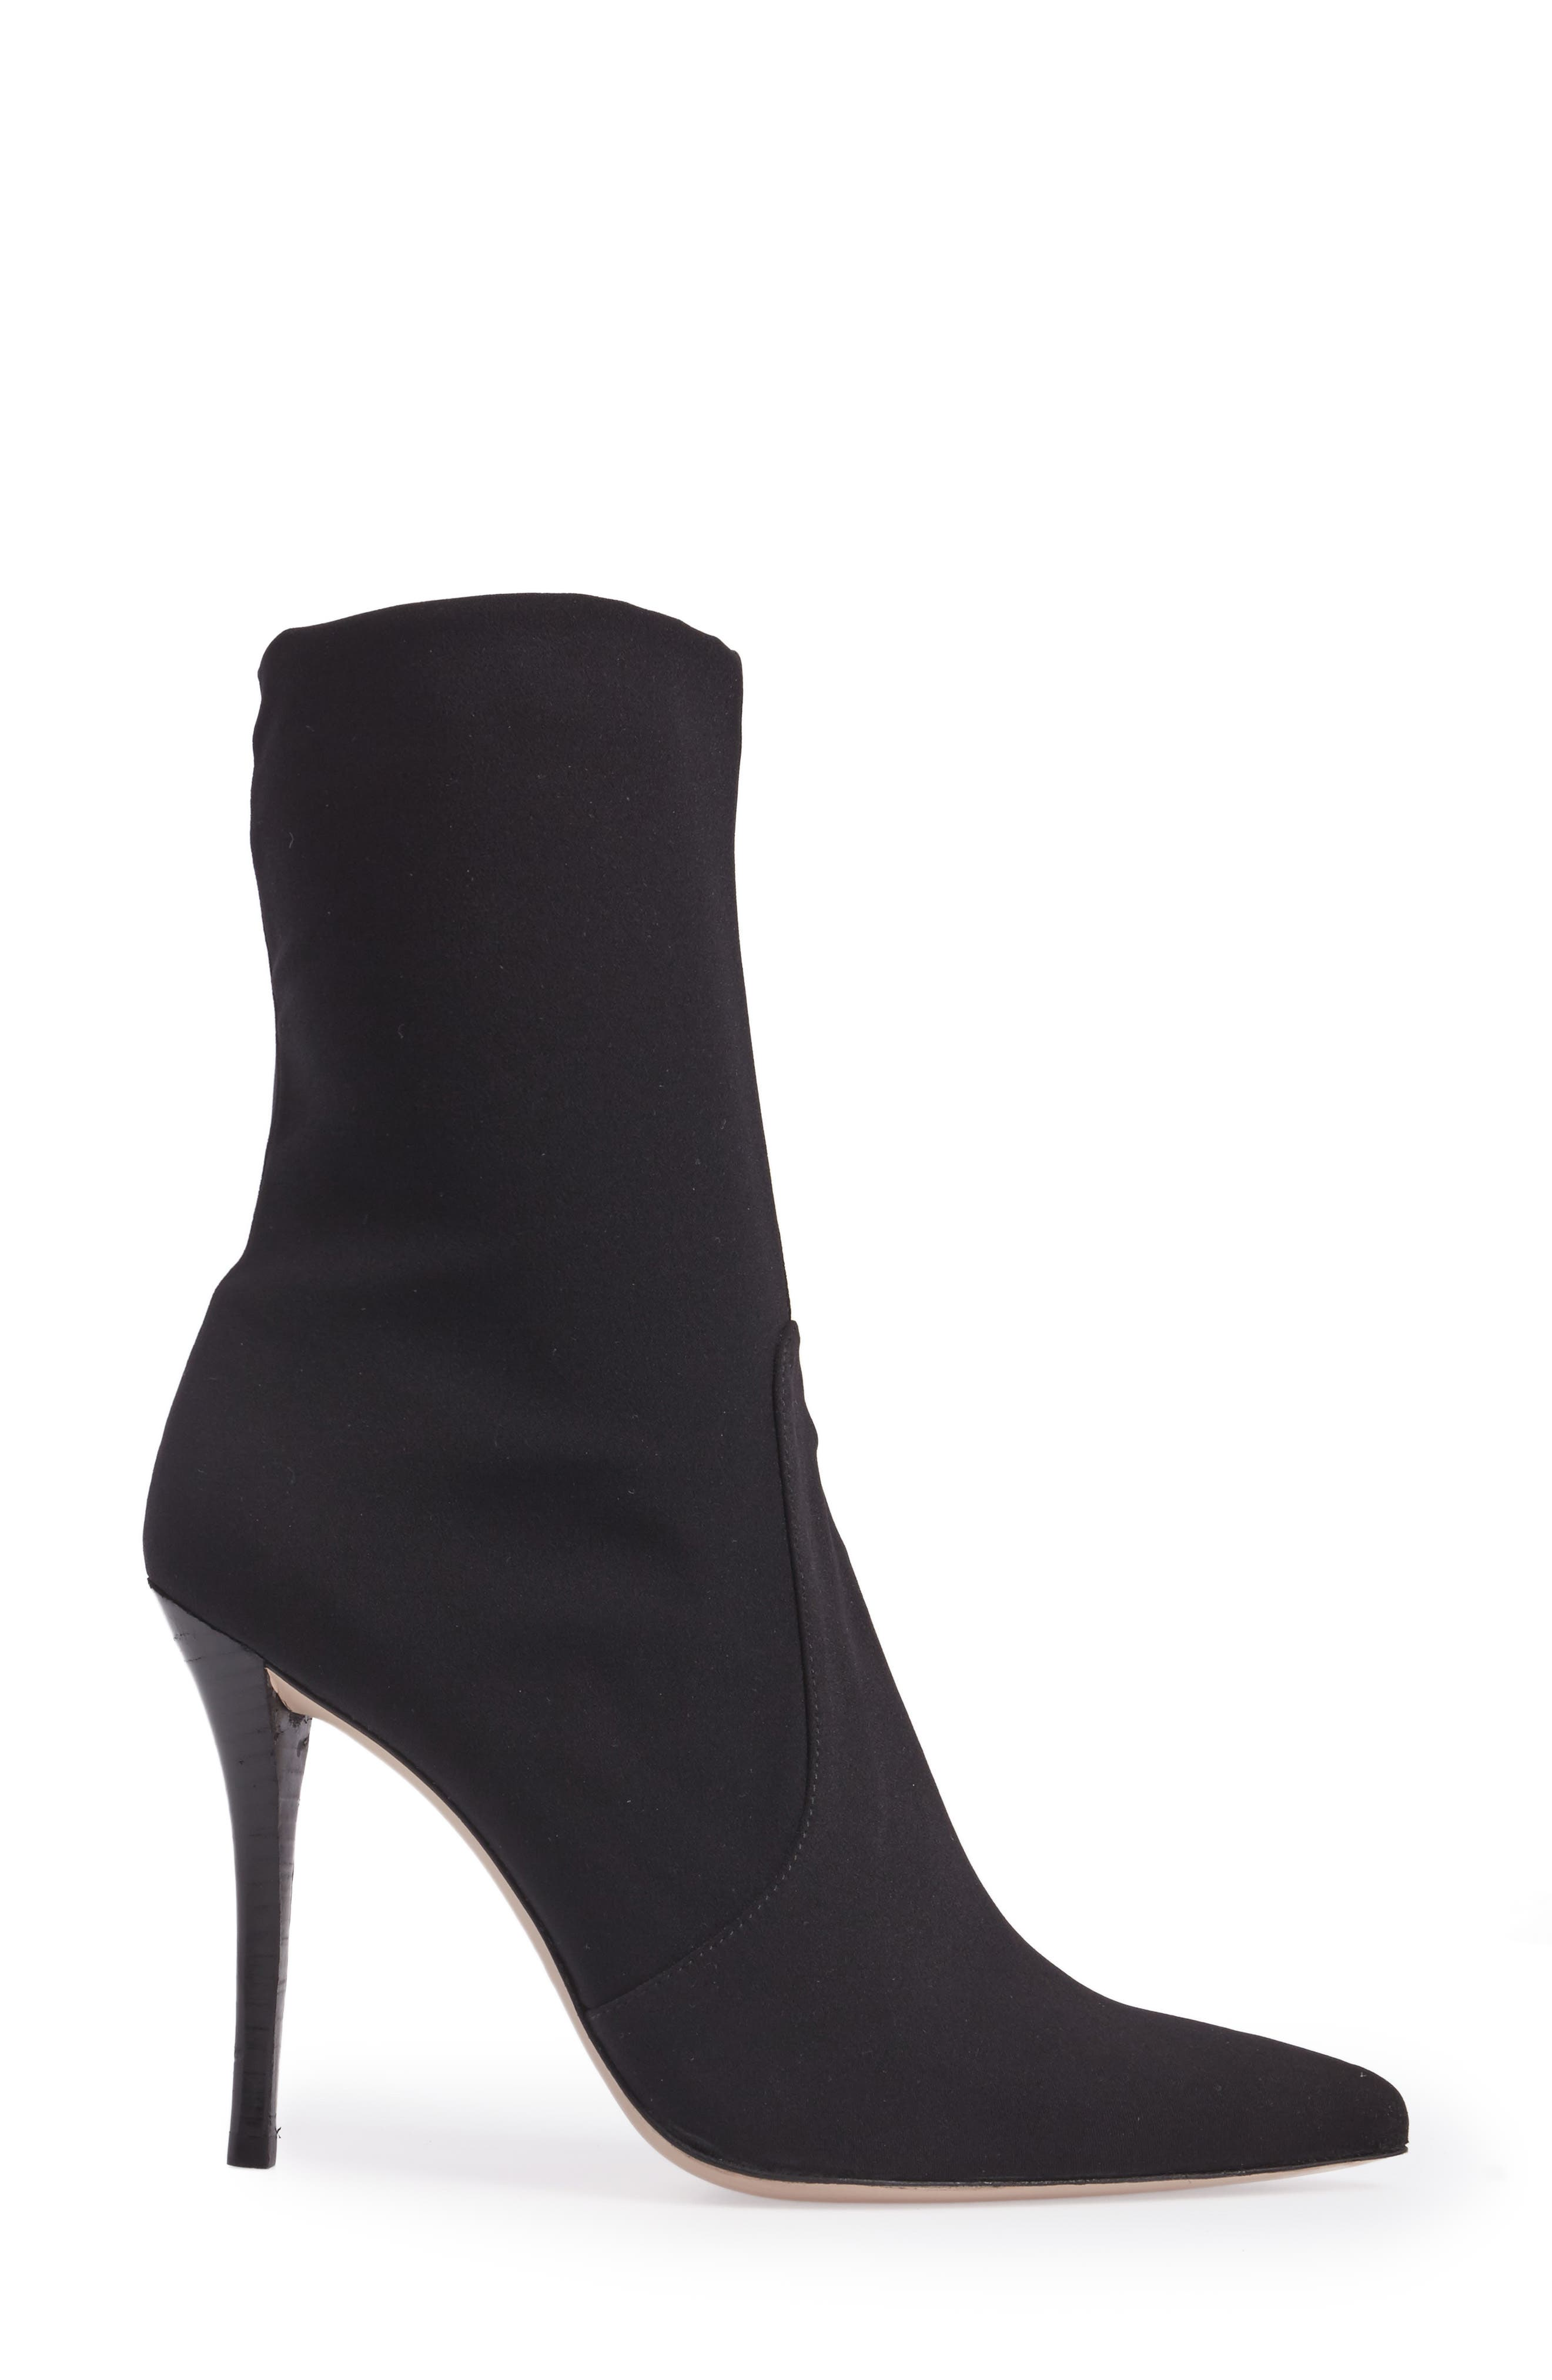 HiFi Pointy Toe Bootie,                             Alternate thumbnail 3, color,                             001